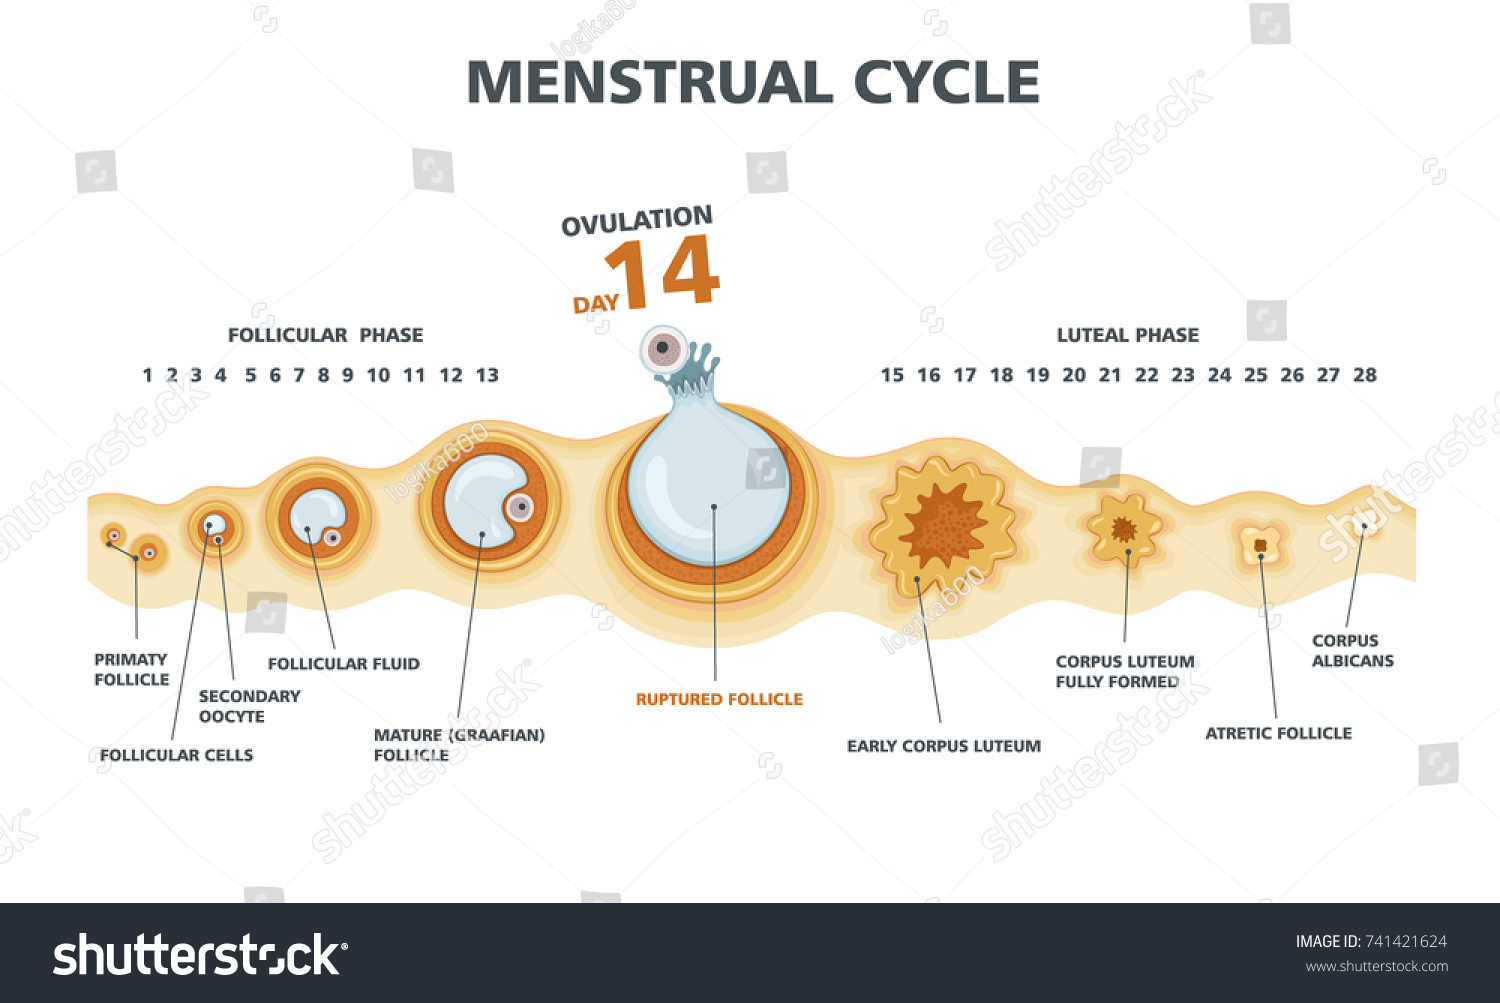 Ovulation Chart Female Menstrual Cycle Stock Vector -1055